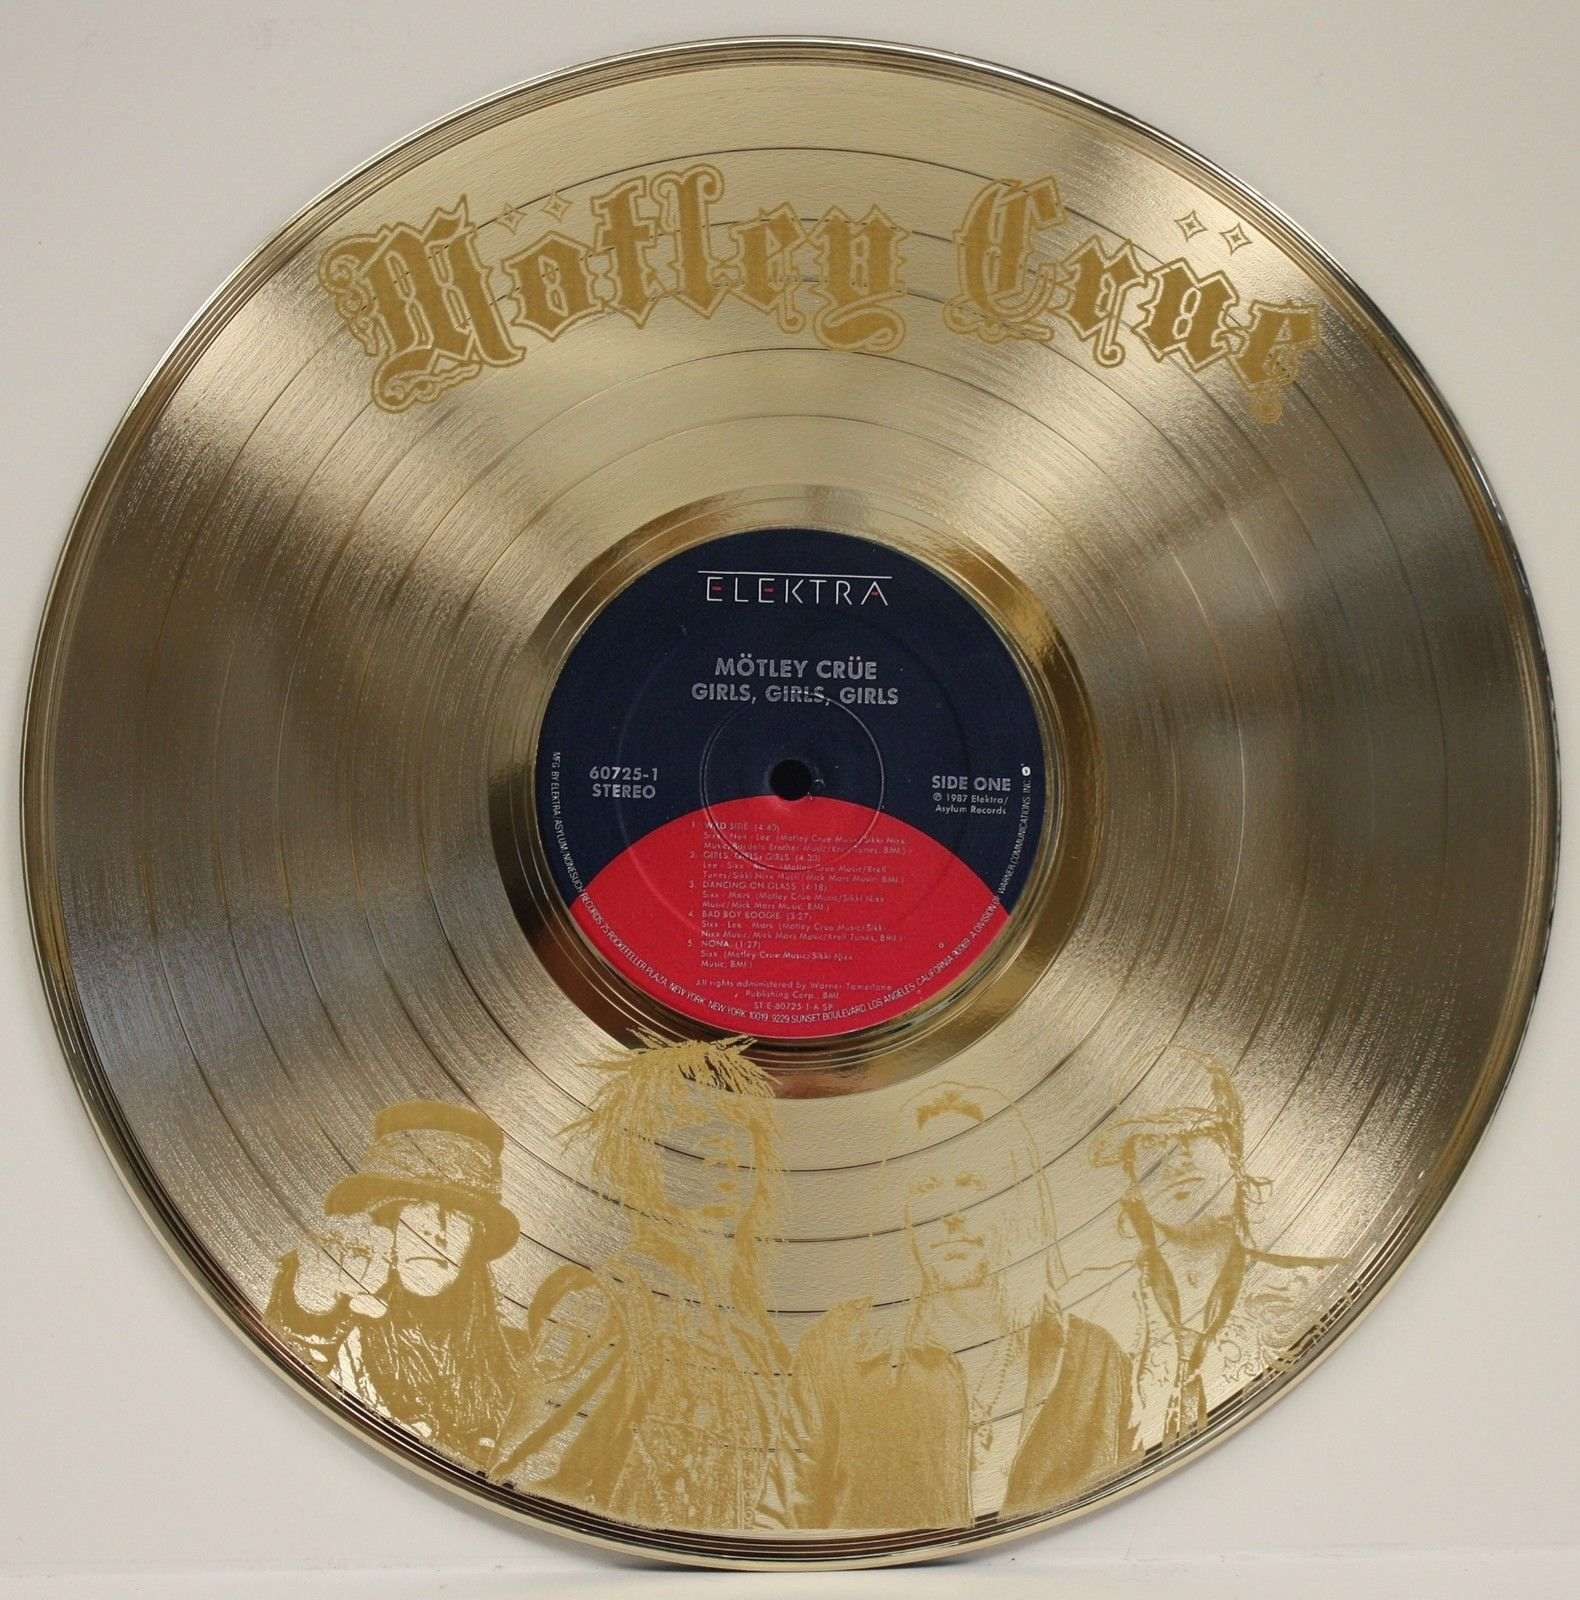 Wall Art Gold Record Awards Album And Disc Collectible